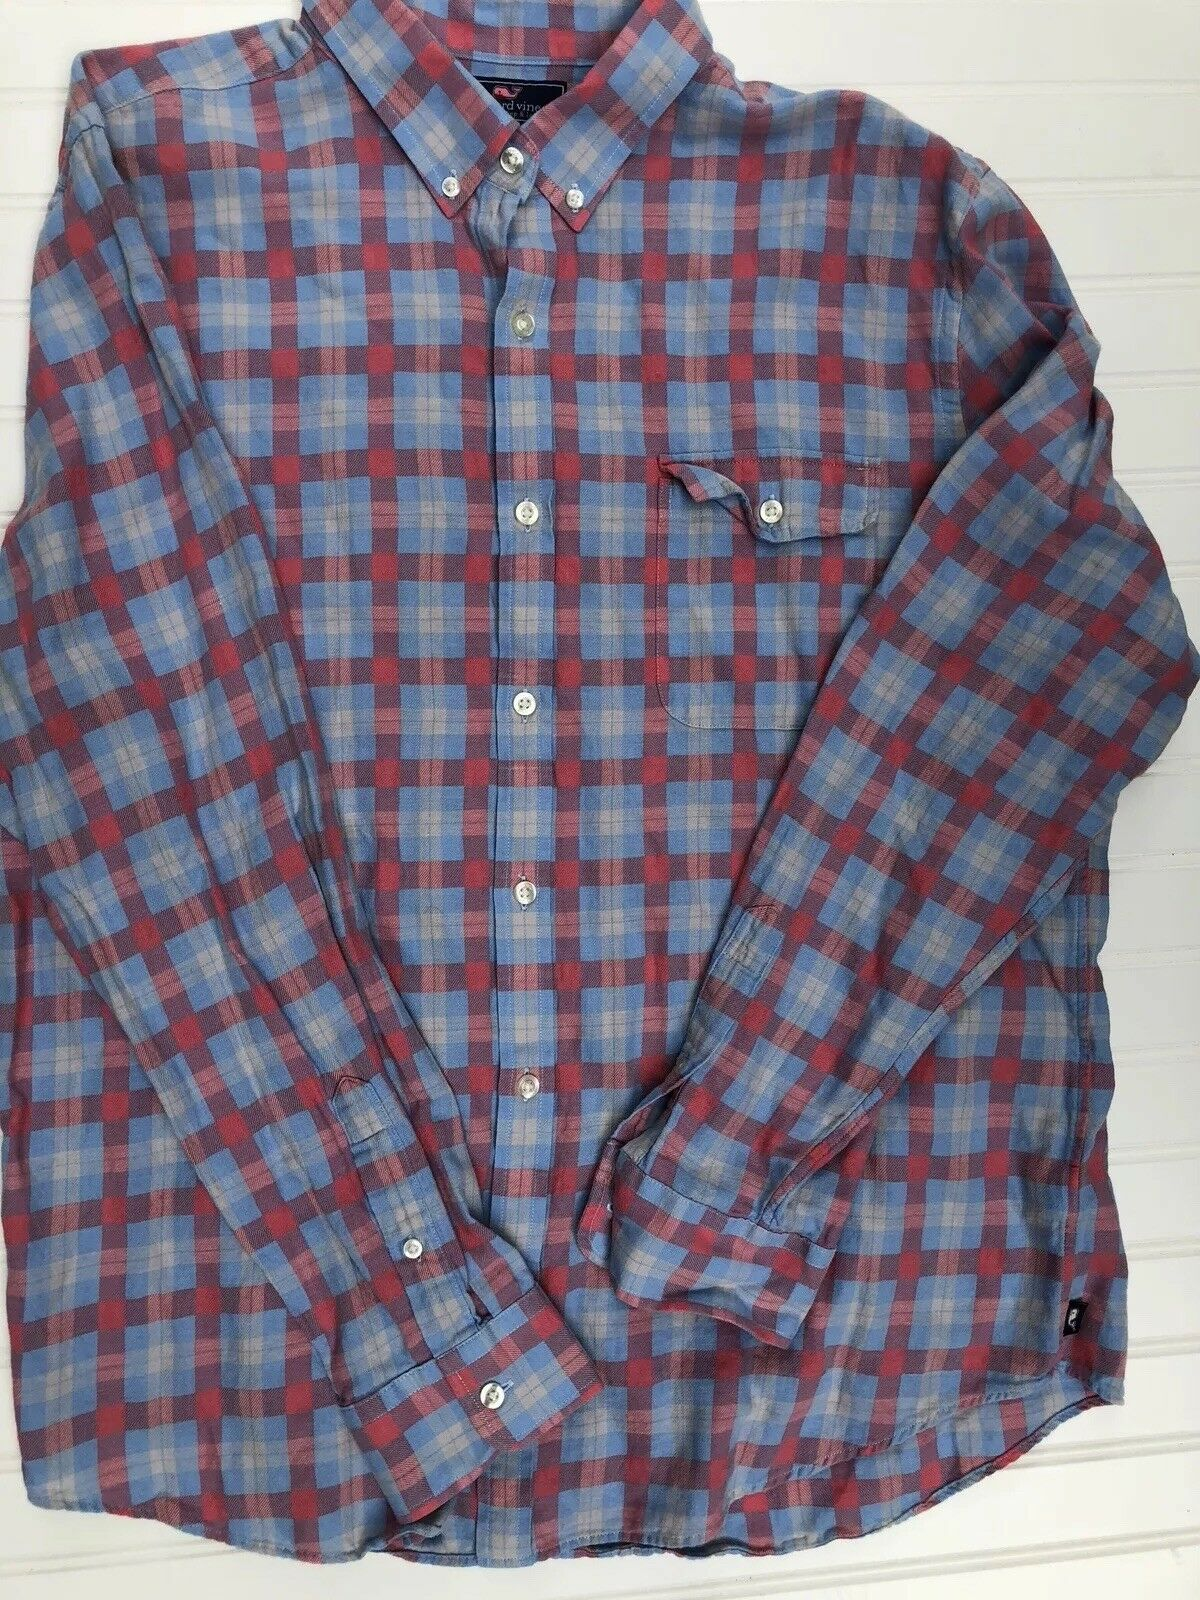 Vineyard Vines Men's XL Plaid Flannel Long Sleeve Shirt Slim Fit Crosby